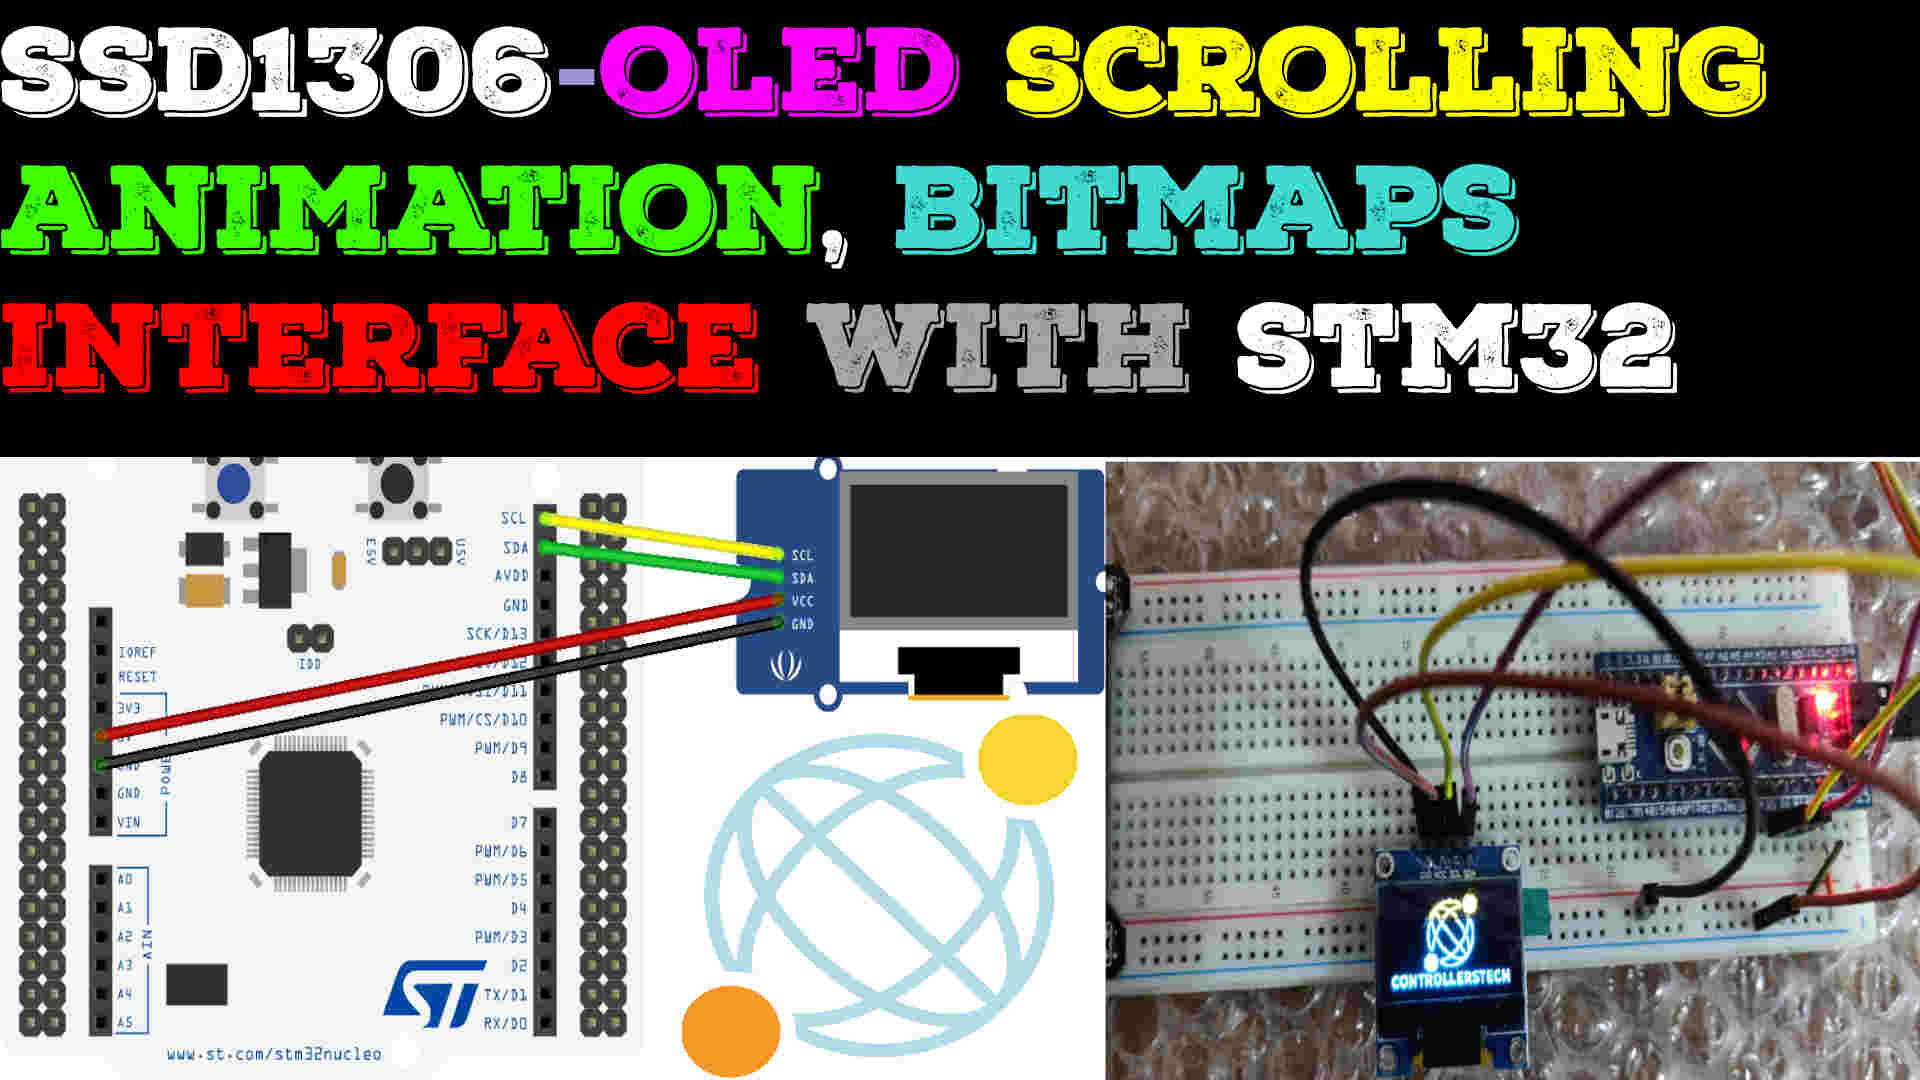 Stm32f103 Lcd 16x2 Example